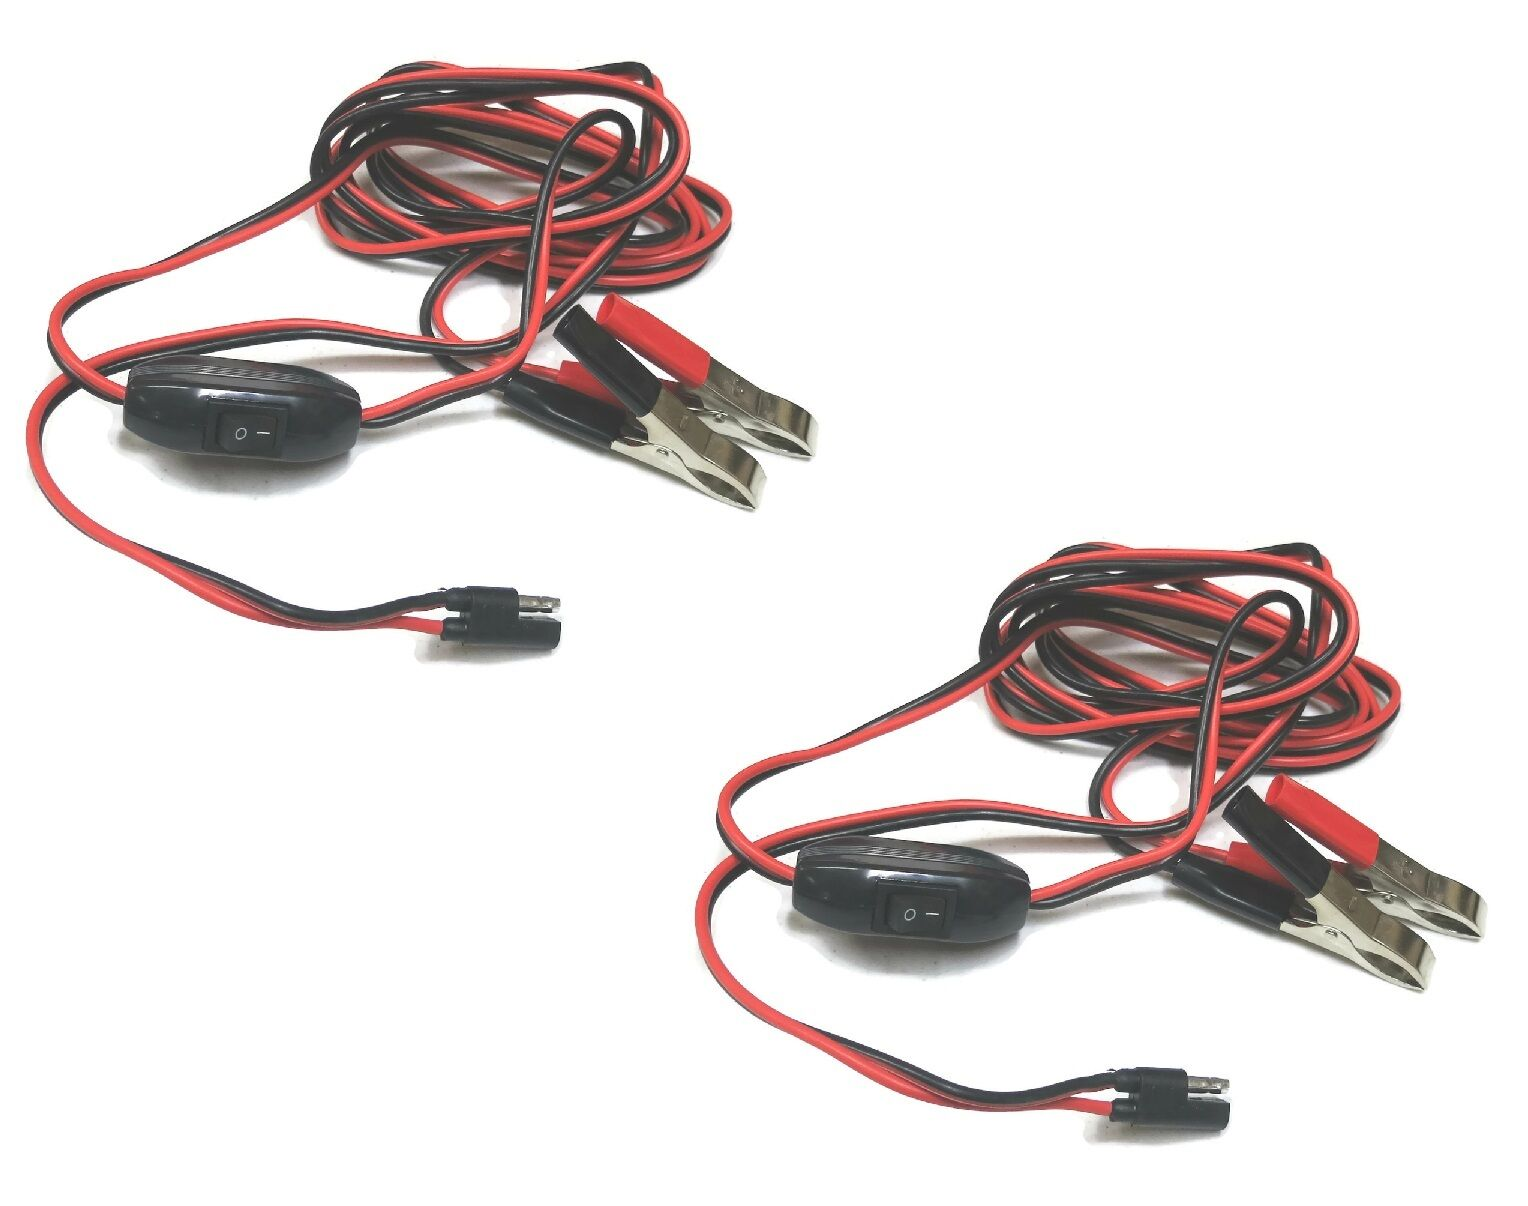 Wiring Harness For Fimco Sprayer Trusted Diagram Atv 2 8 Ft Wire Power Cables 12v Flojet Demand 3 Point Boomless Sprayers